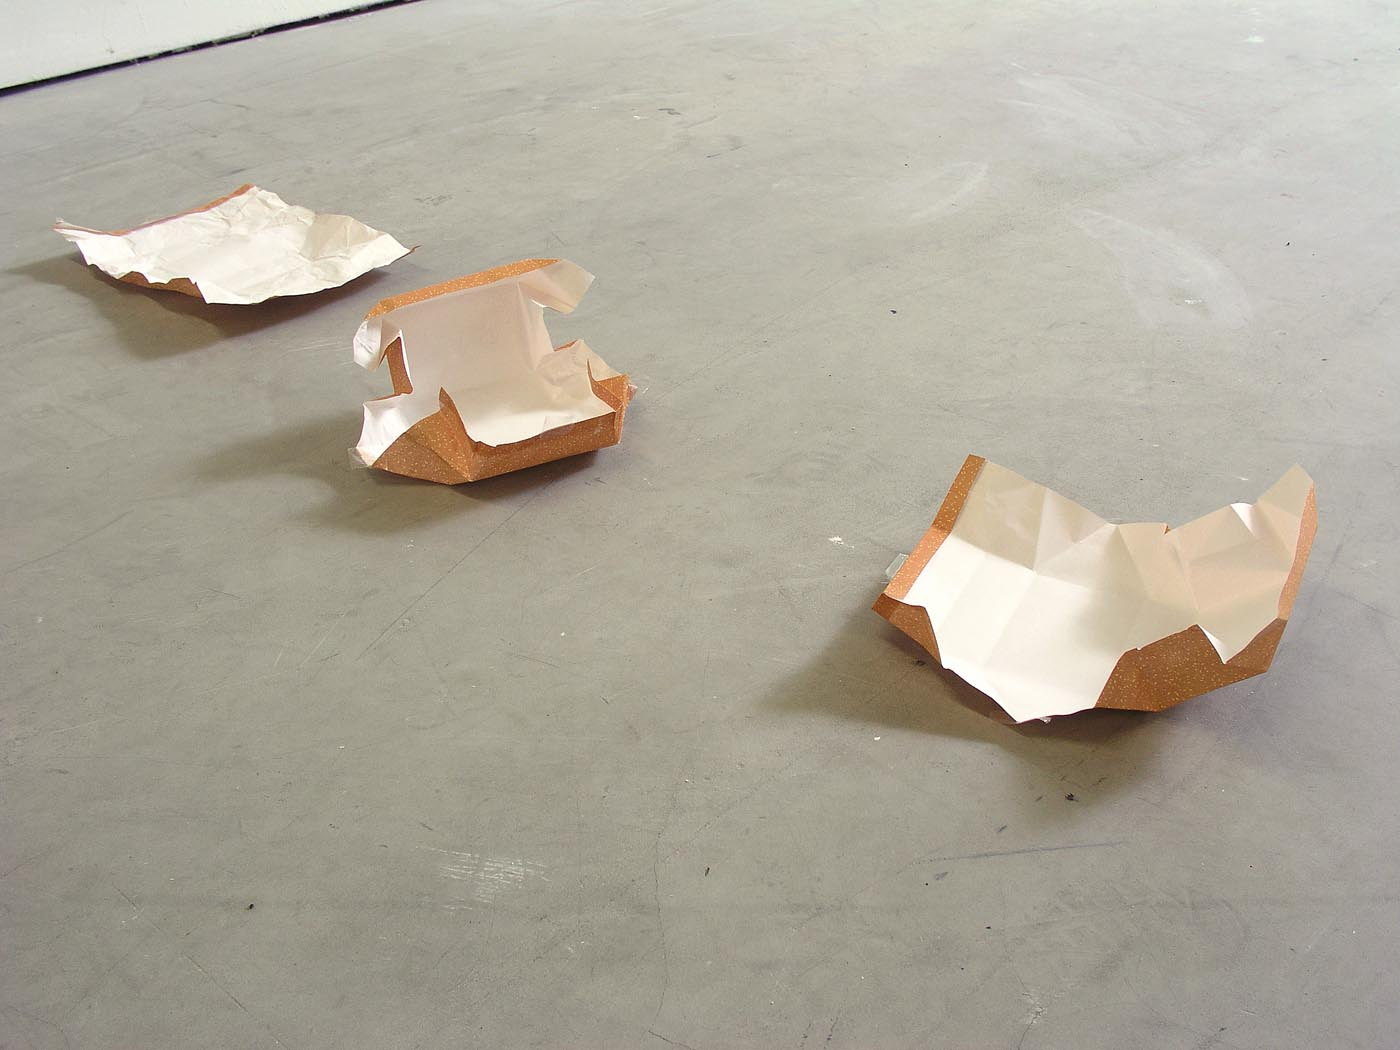 <i>gift</i>, 2007, an object wrapped once and unwrapped again, the same object wrapped eight times and unwrapped again, eight different objects each wrapped once and unwrapped again, 202 x 289 mm each, three sheets of gift wrapping paper, adhesive tape